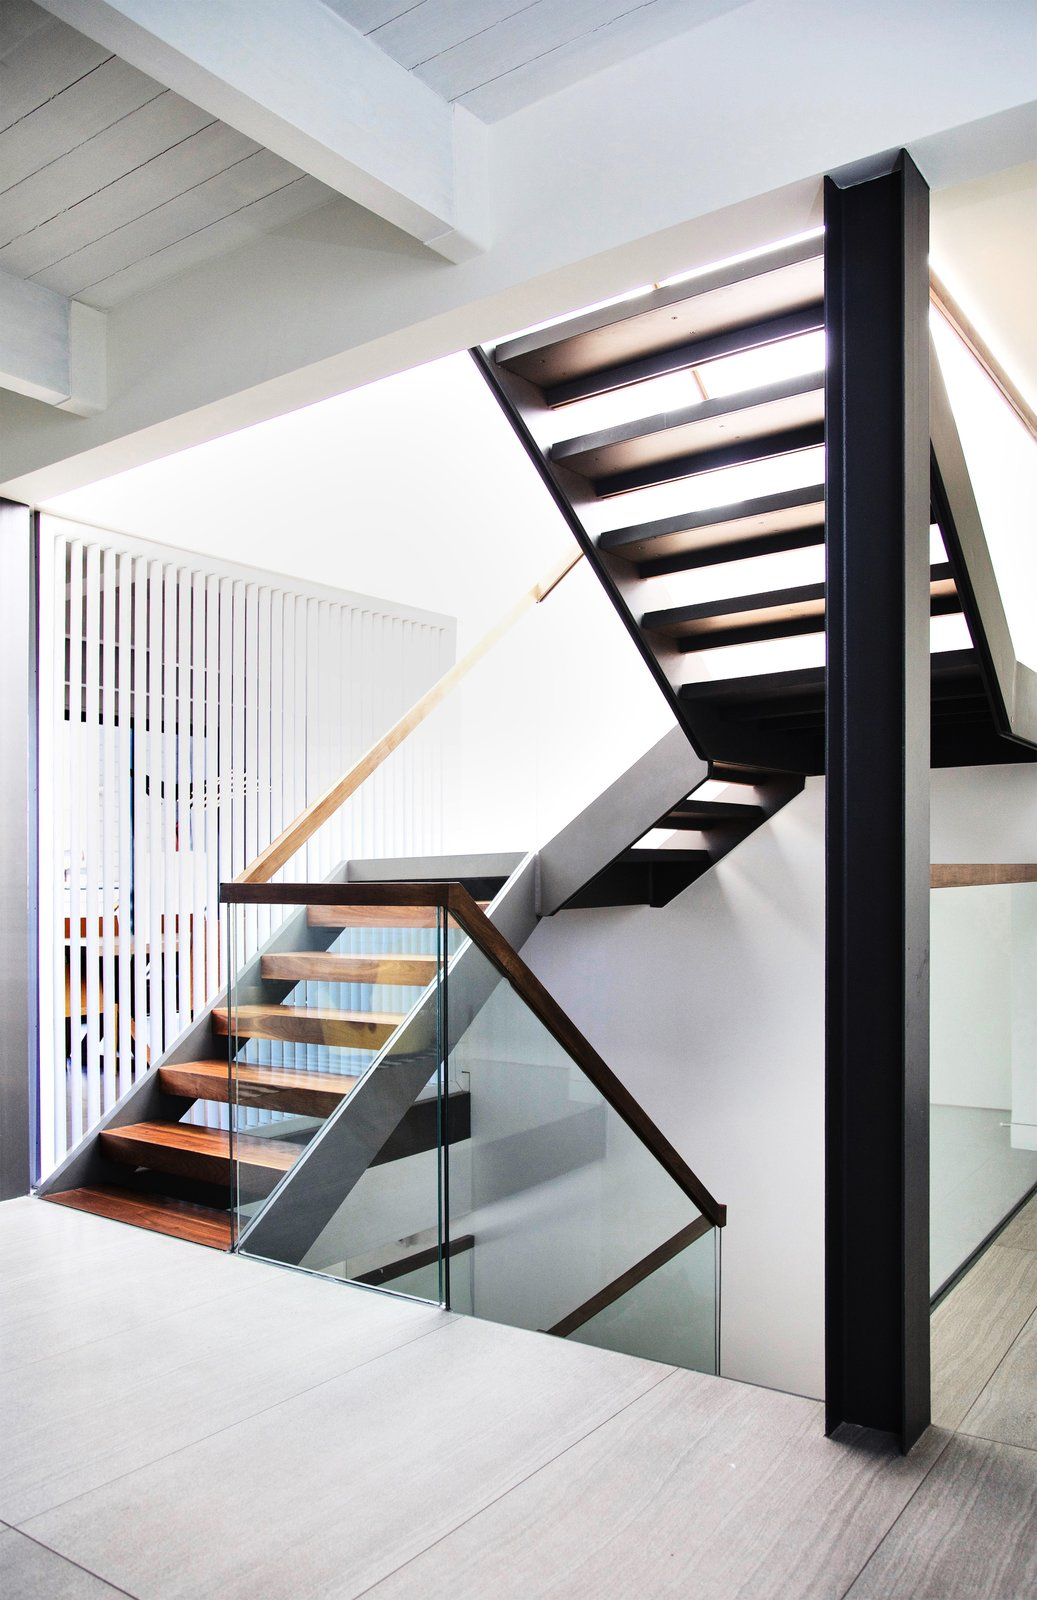 Staircase, Wood Tread, Wood Railing, and Glass Railing Walnut and Steel stair connecting all floors  Lyon Residence by Diego Pacheco Design Practice